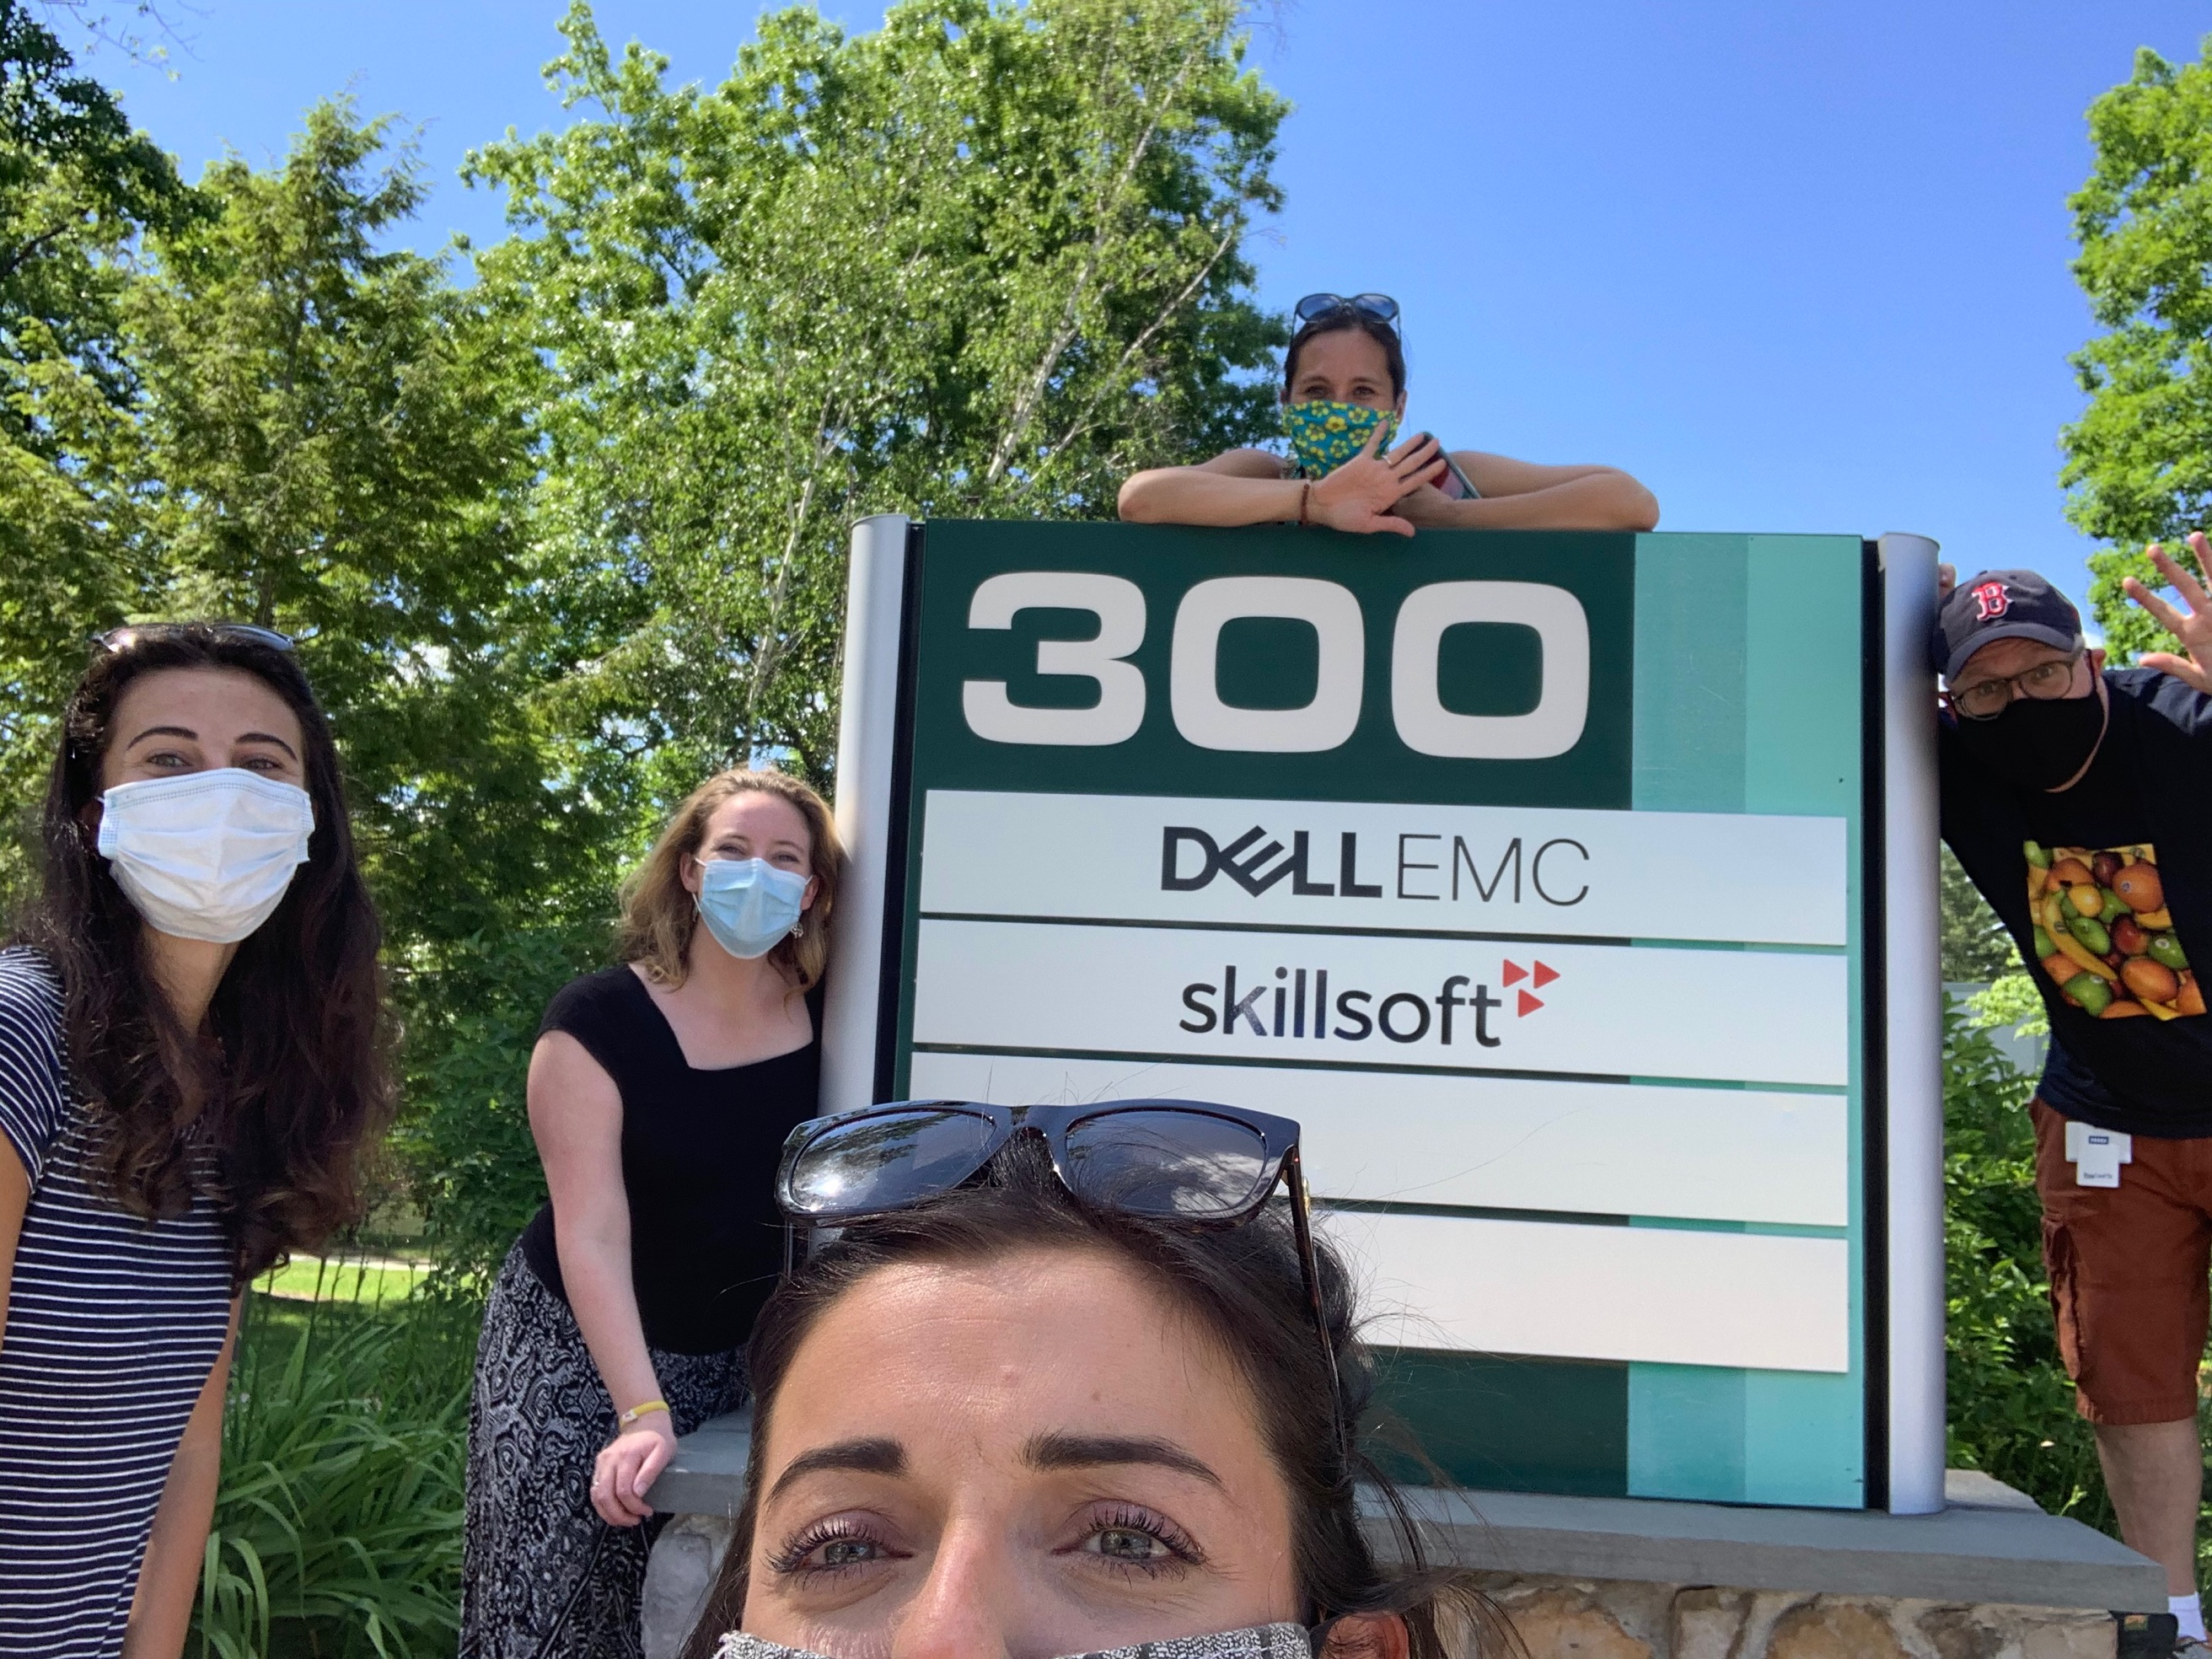 My team and I social distancing outside the Skillsoft office